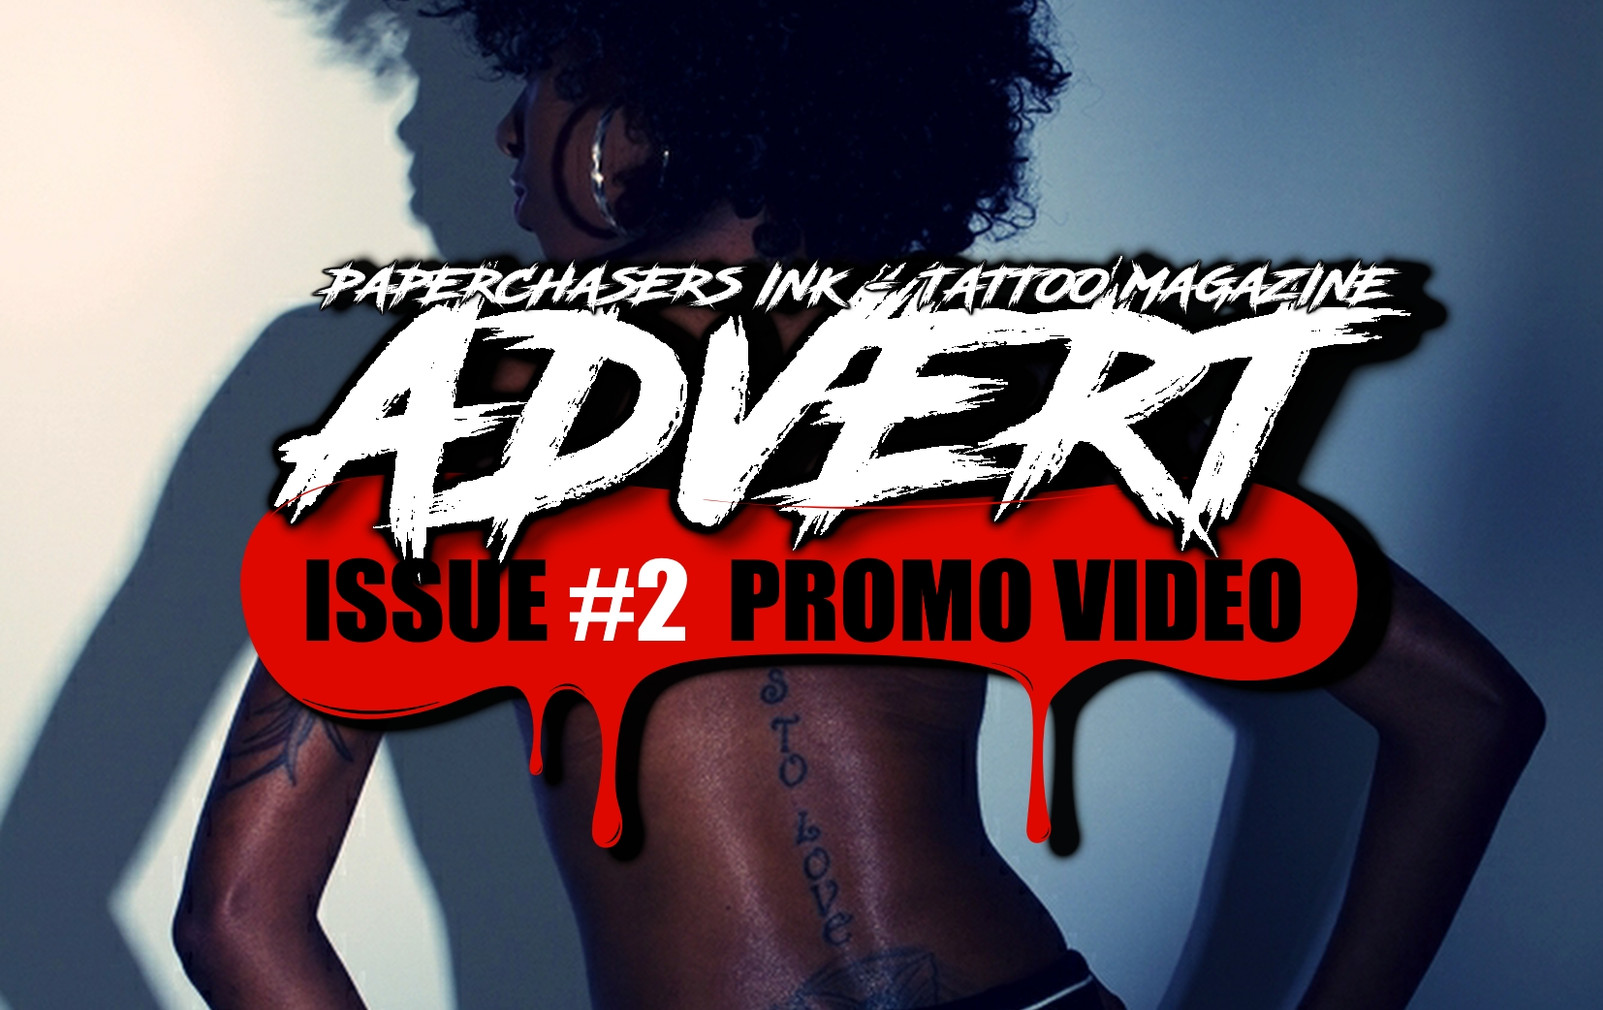 WATCH: ISSUE #2 PHOTO SHOOT - BEHIND THE SCENES